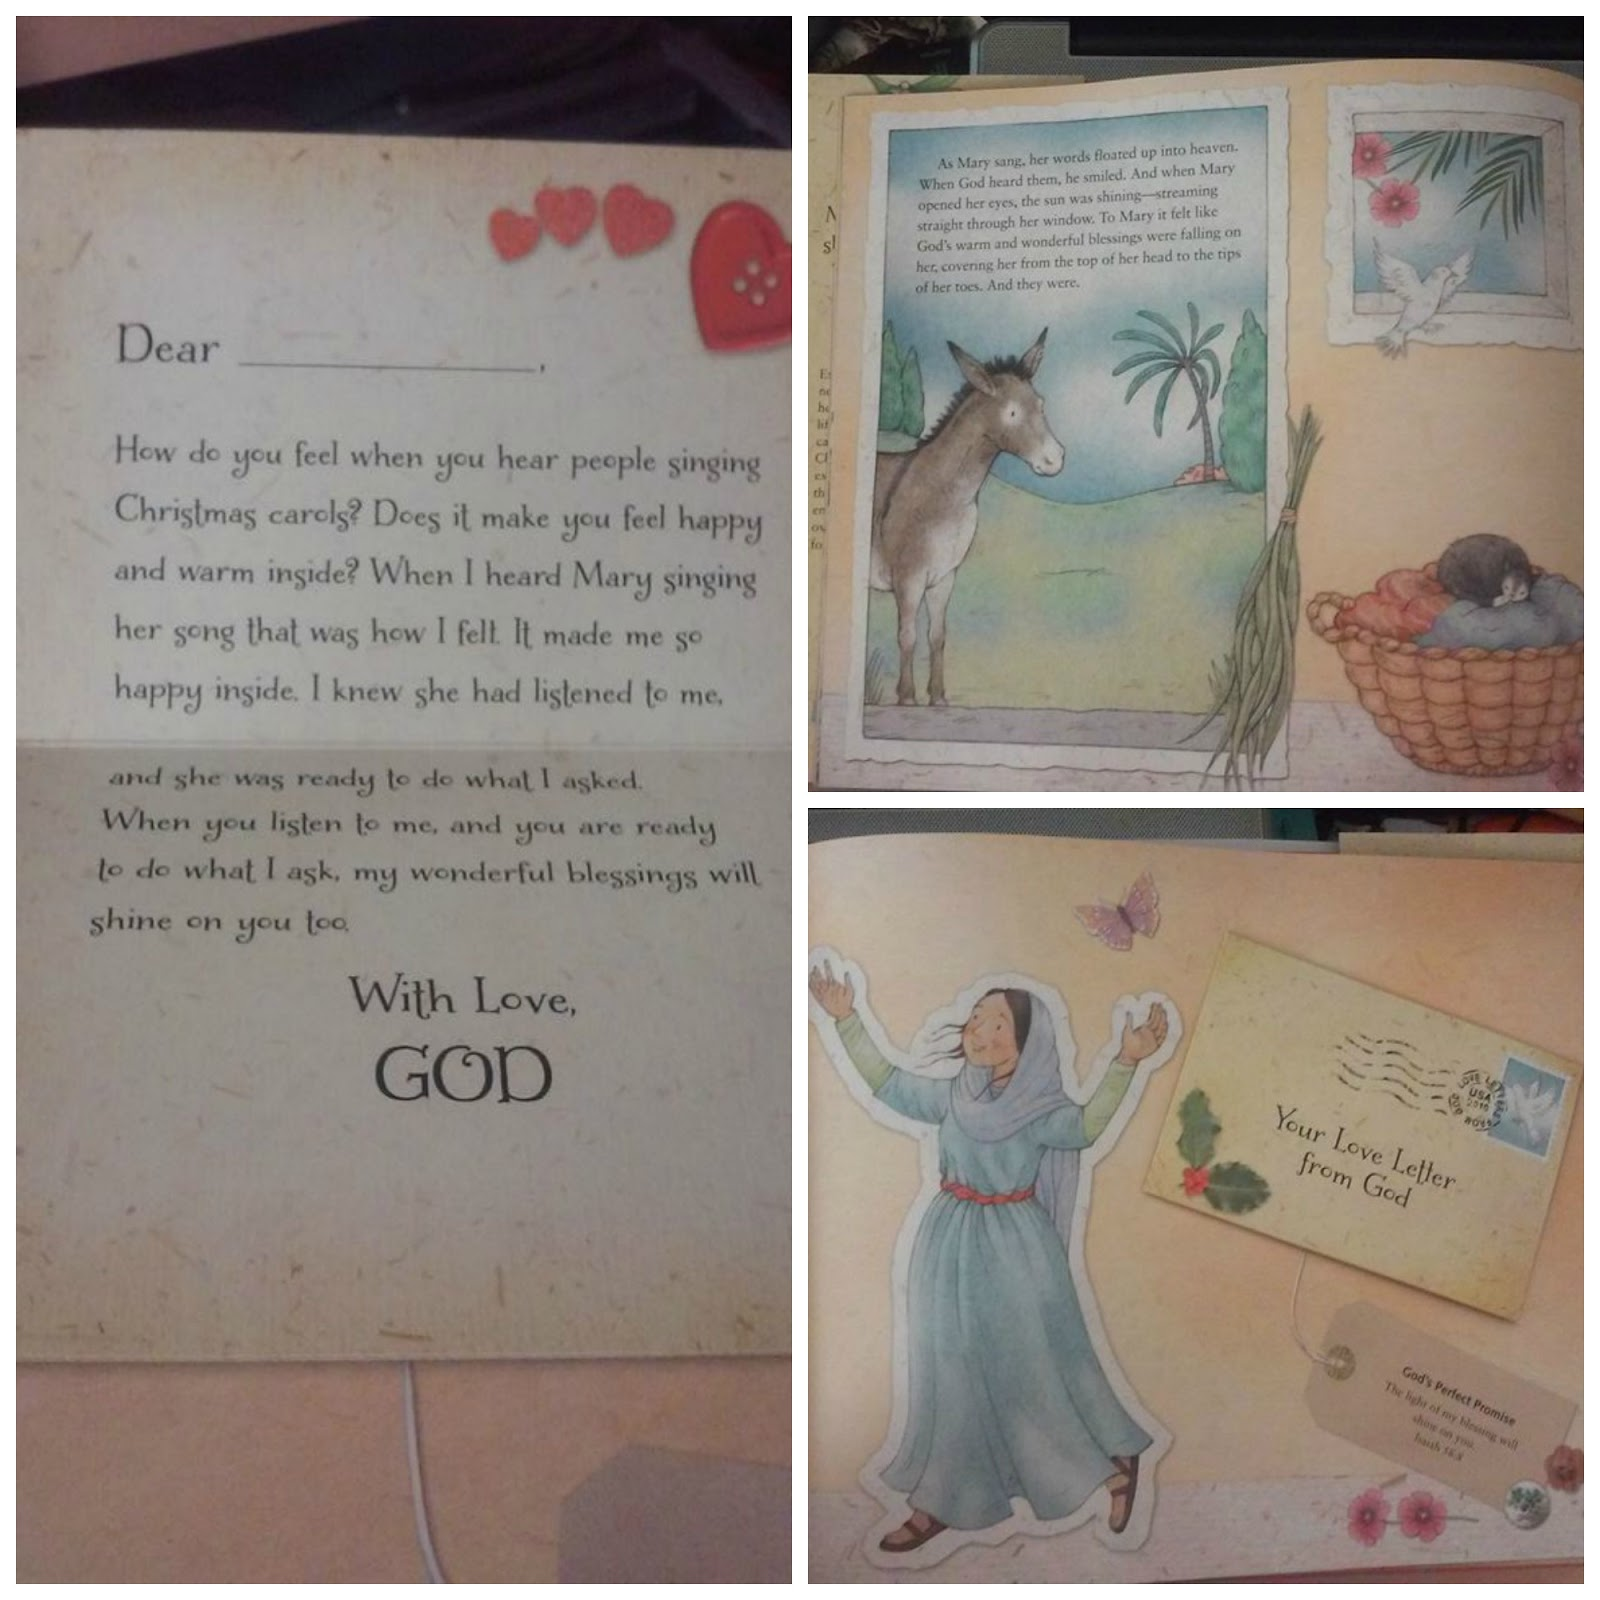 Our life home and school christmas love letters from god book i cannot wait to give this beautiful book to my 5 year old daughter for christmas she loves books and this will be a perfect book to add to her collection spiritdancerdesigns Choice Image